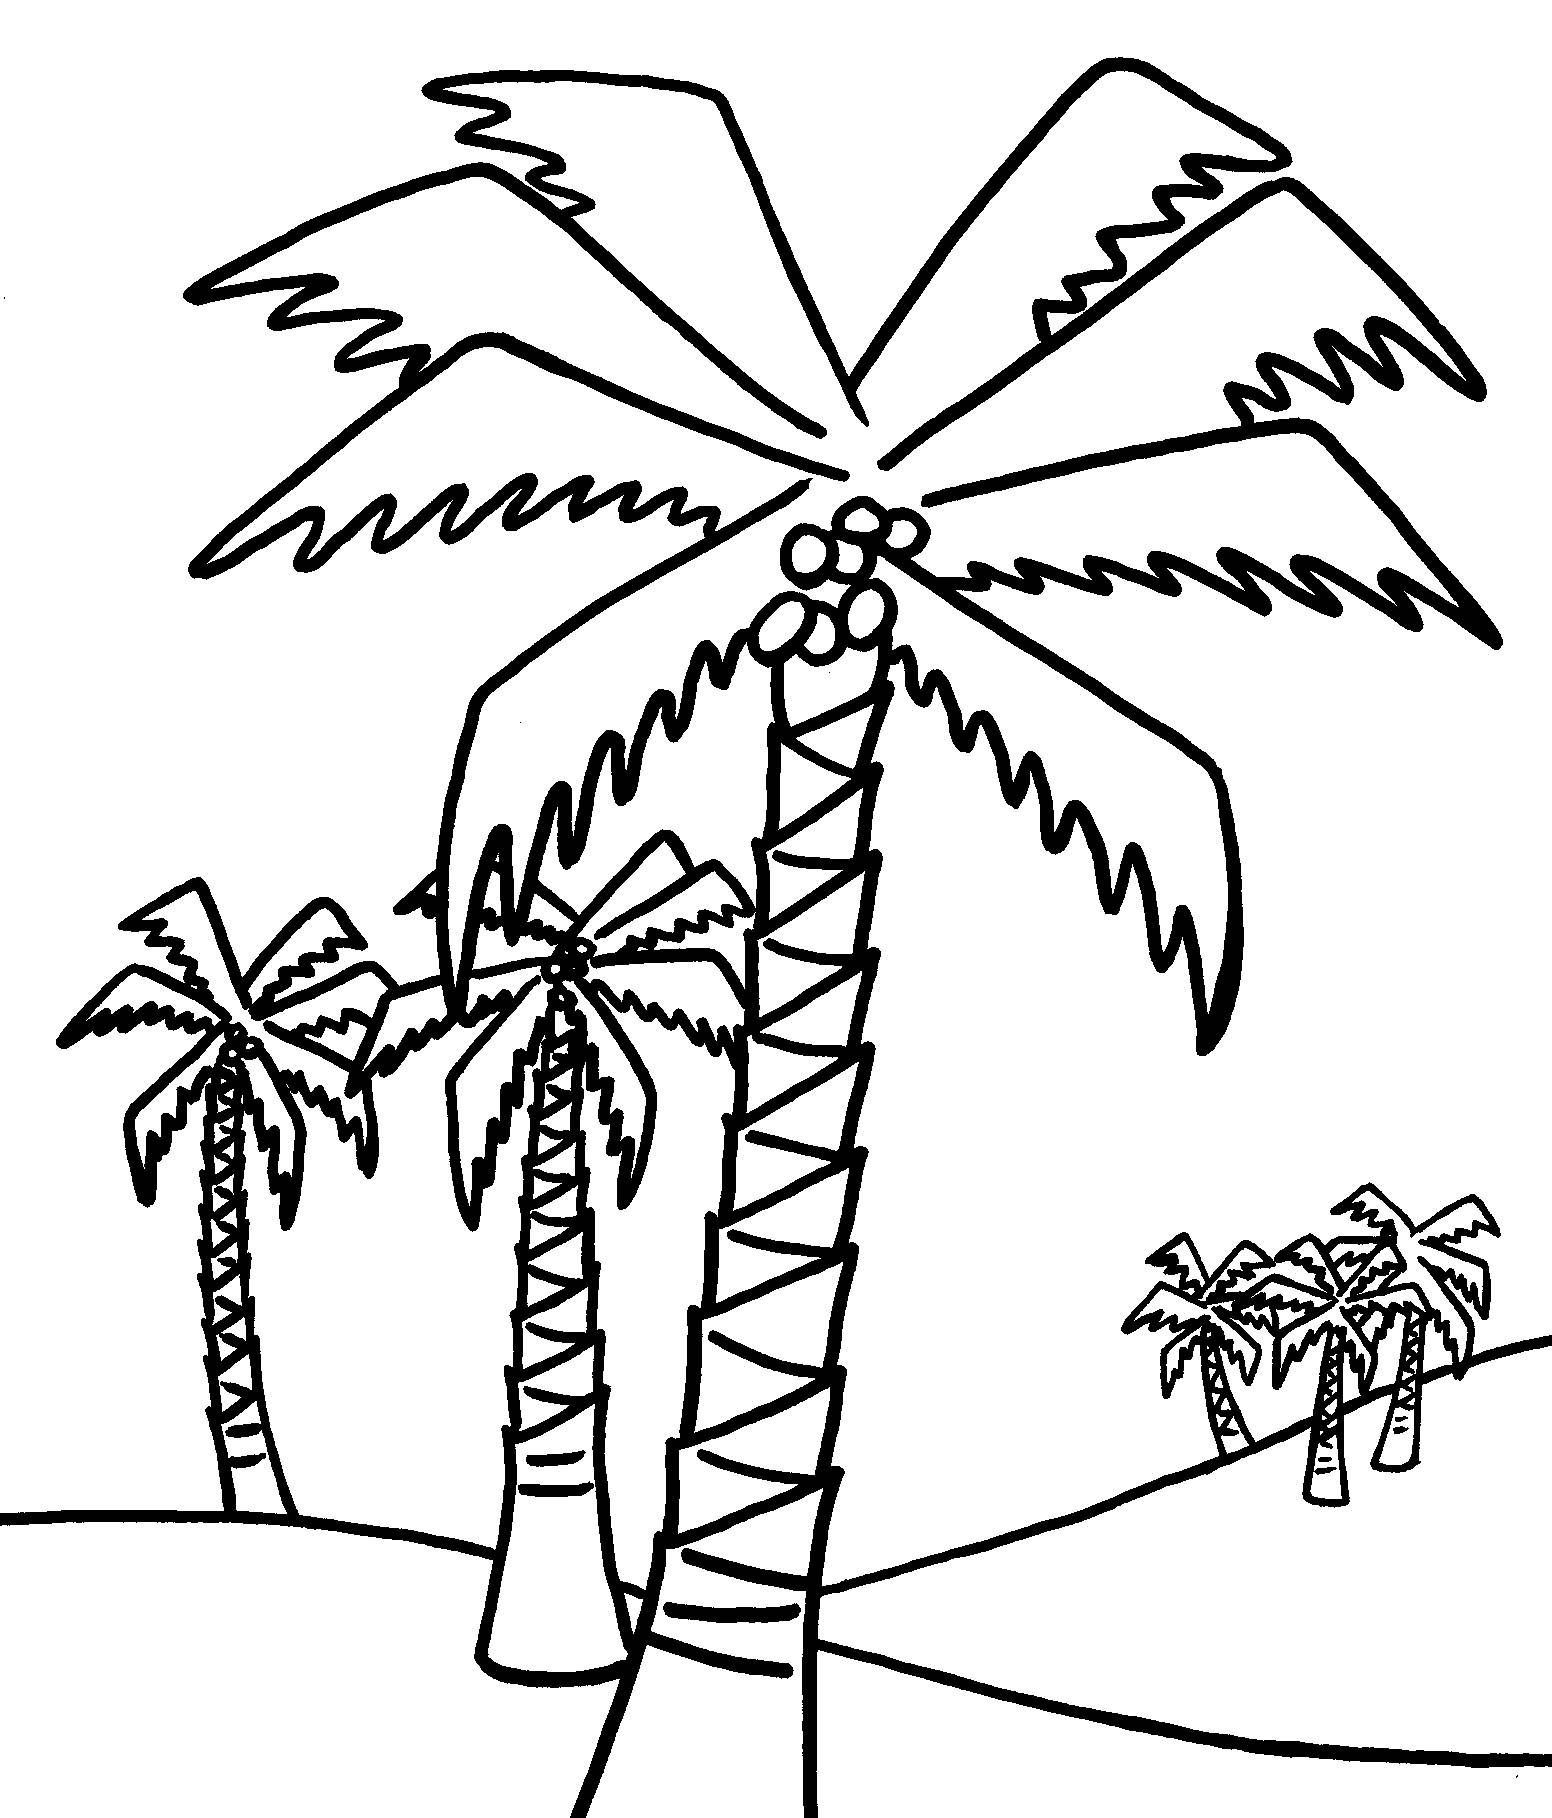 Free Printable Tree Coloring Pages For Kids | Coloring Pages | Tree - Free Printable Palm Tree Template